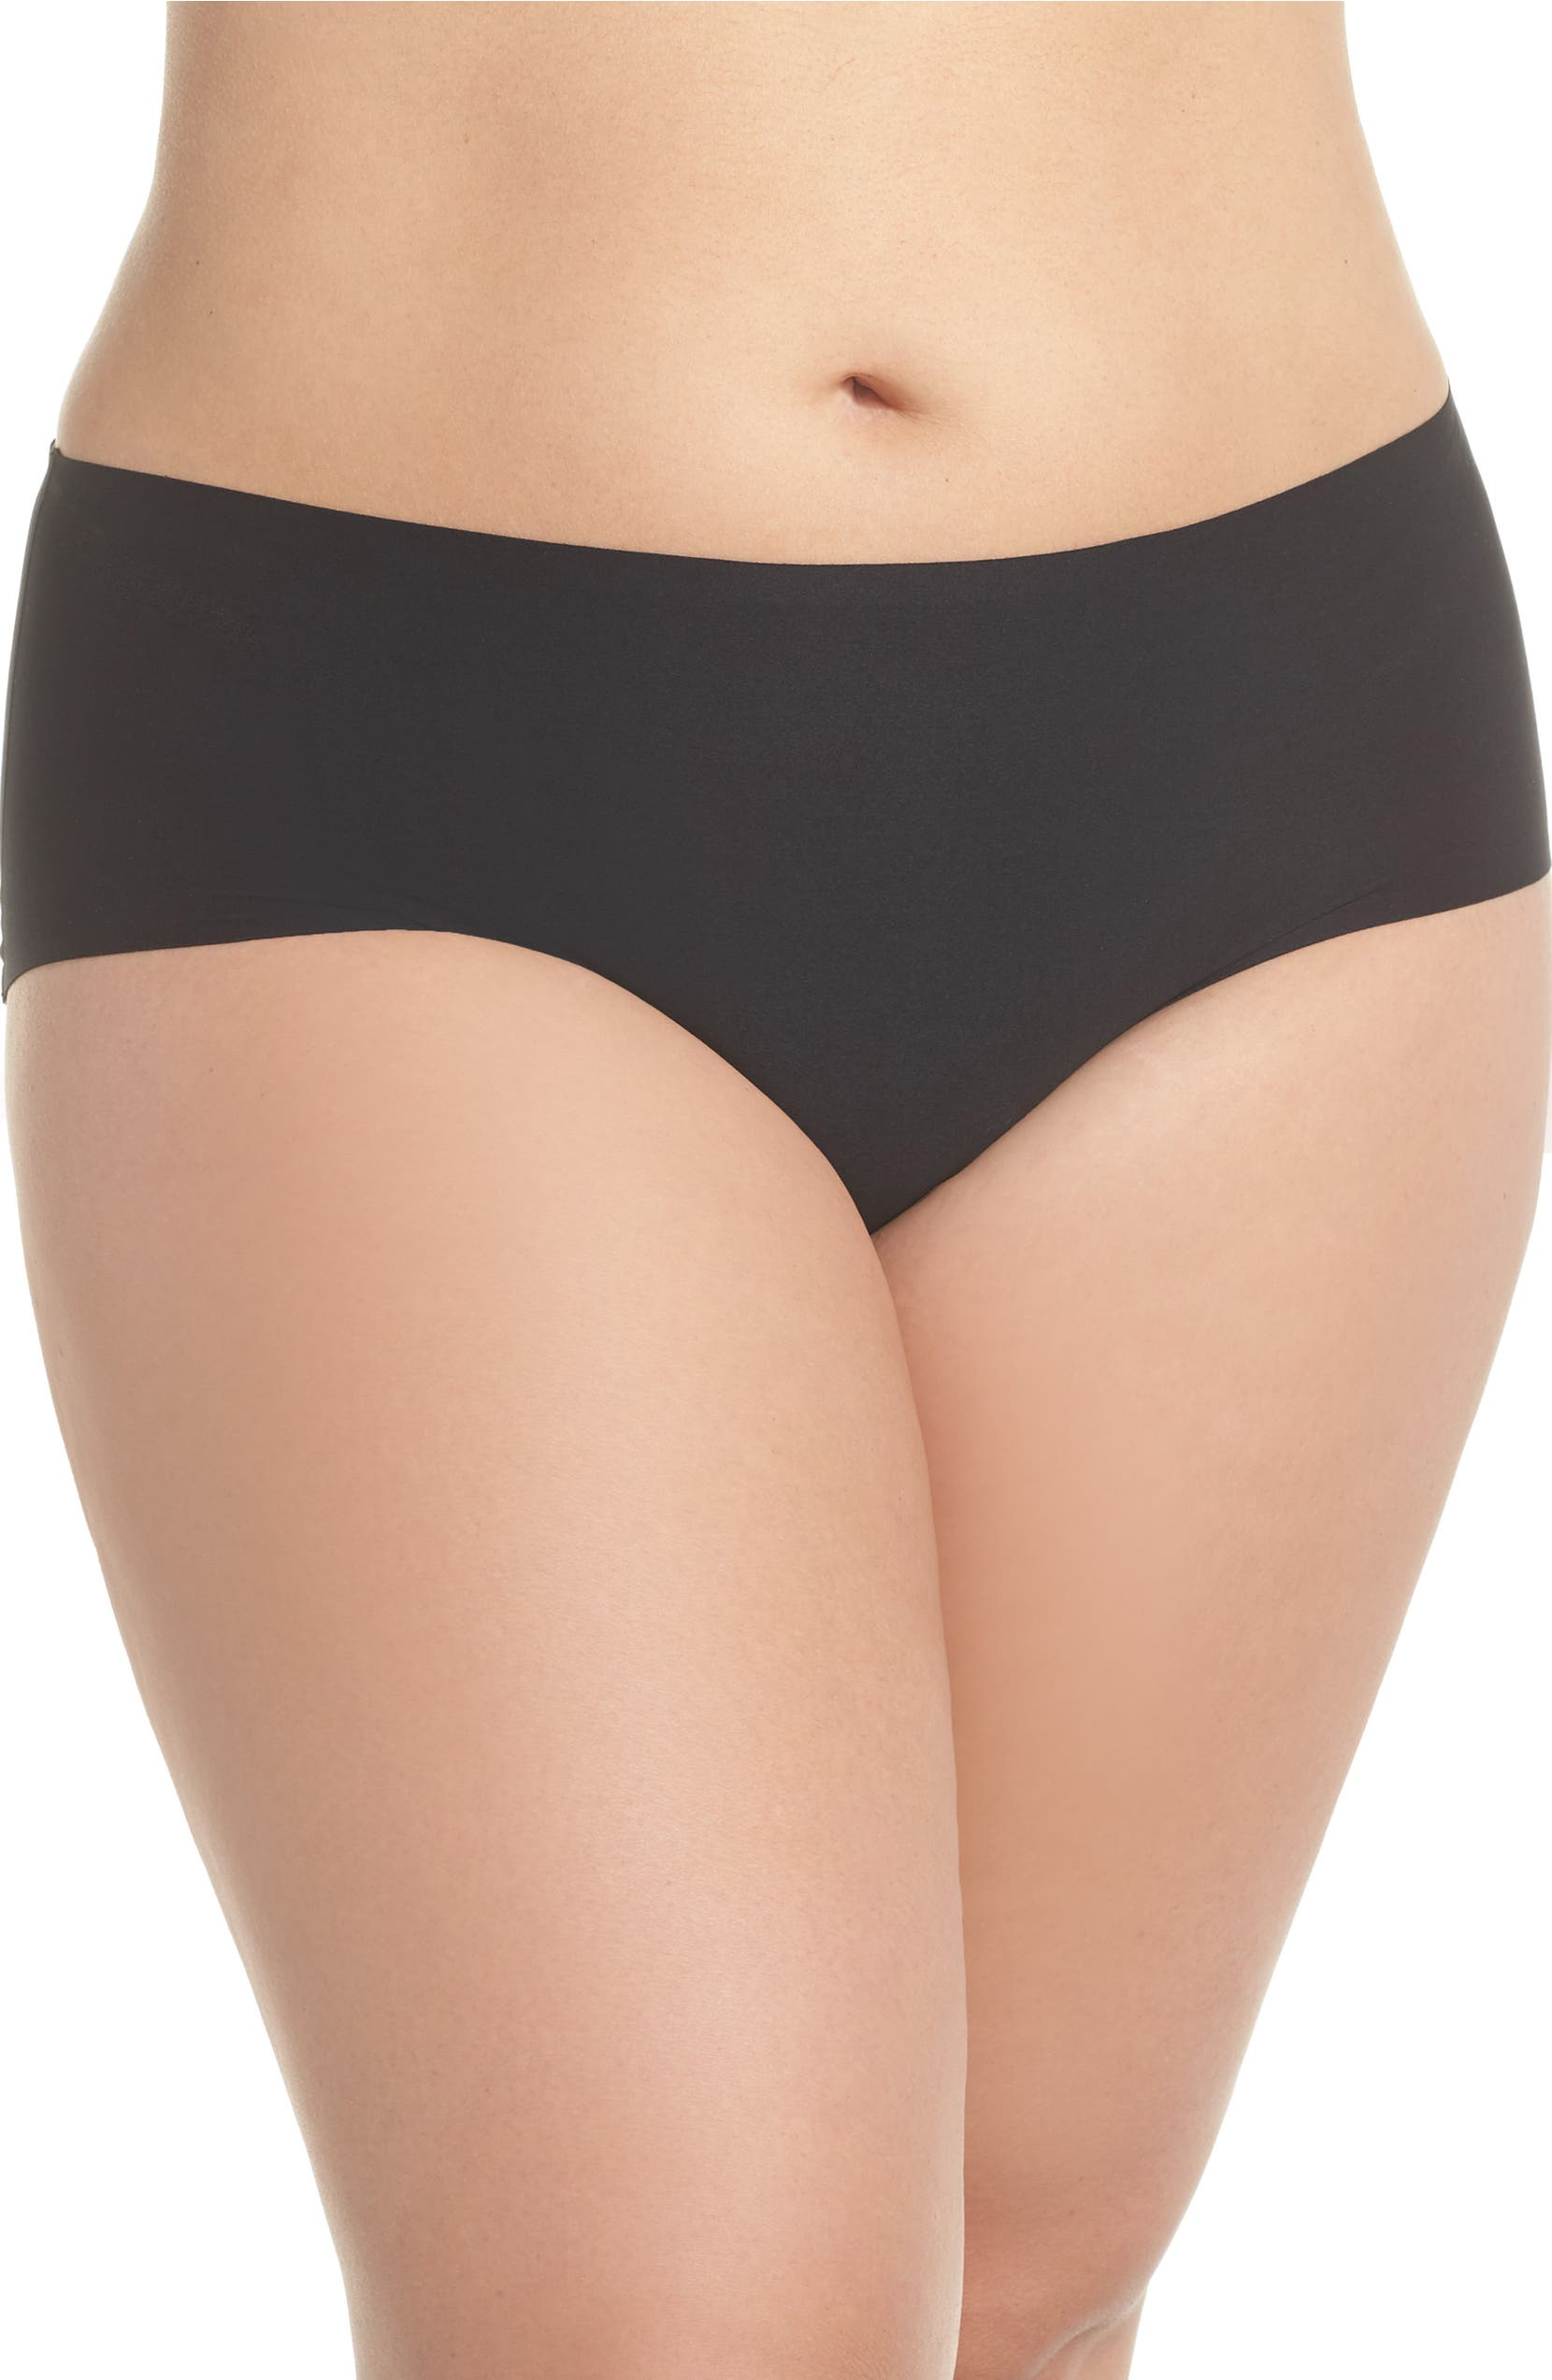 dc68fa5010208 Chantelle Intimates Soft Stretch Seamless Hipster Panties (Plus Size) (3  for  48)